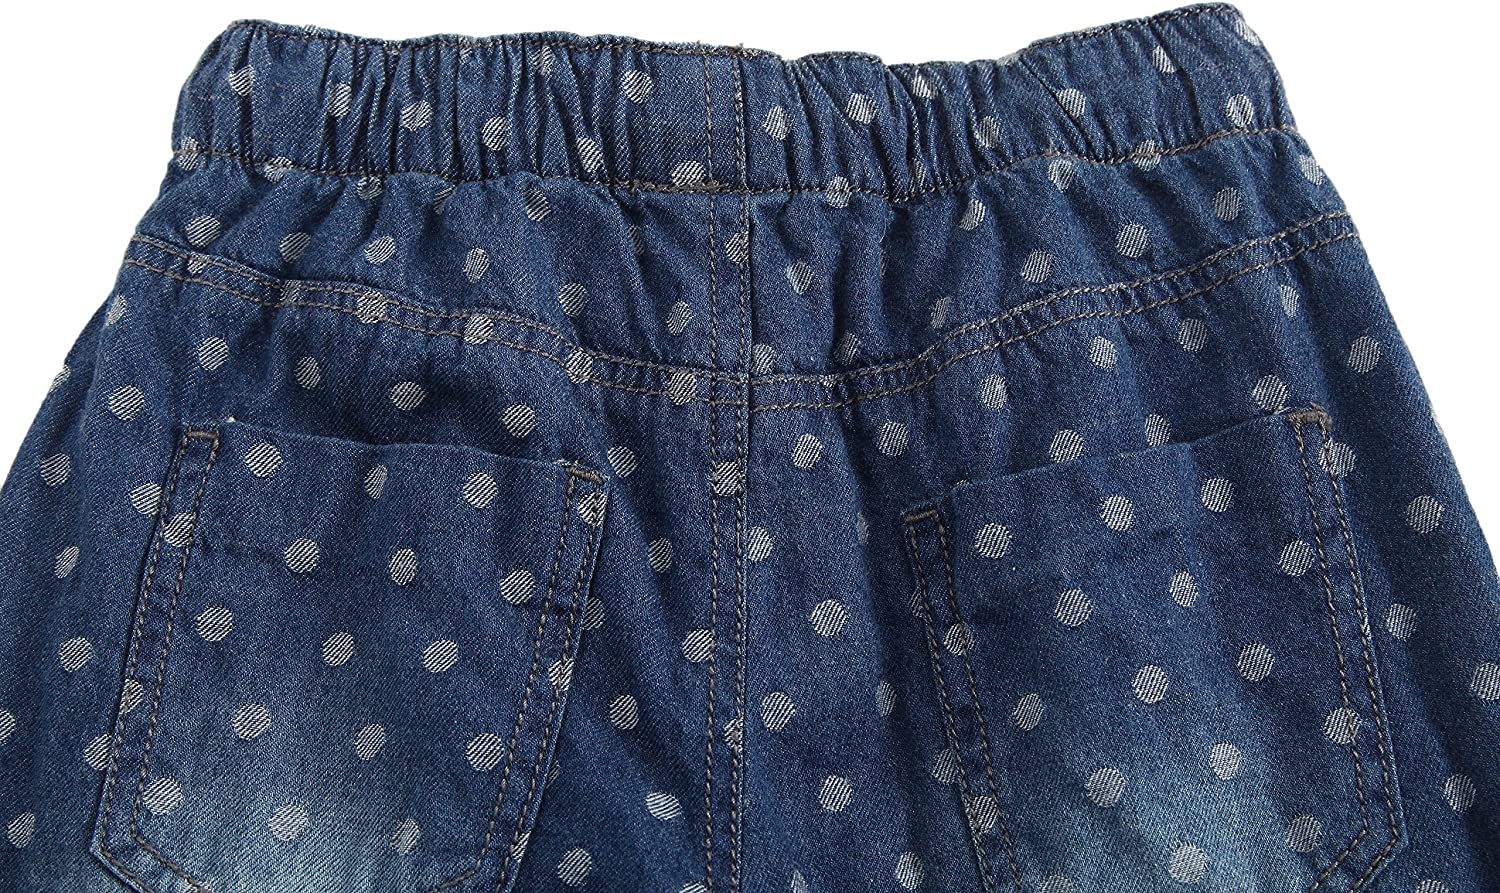 Richie House Big Girls Polka Dot Pants with Cotton Lining RH2246 Size 3-8